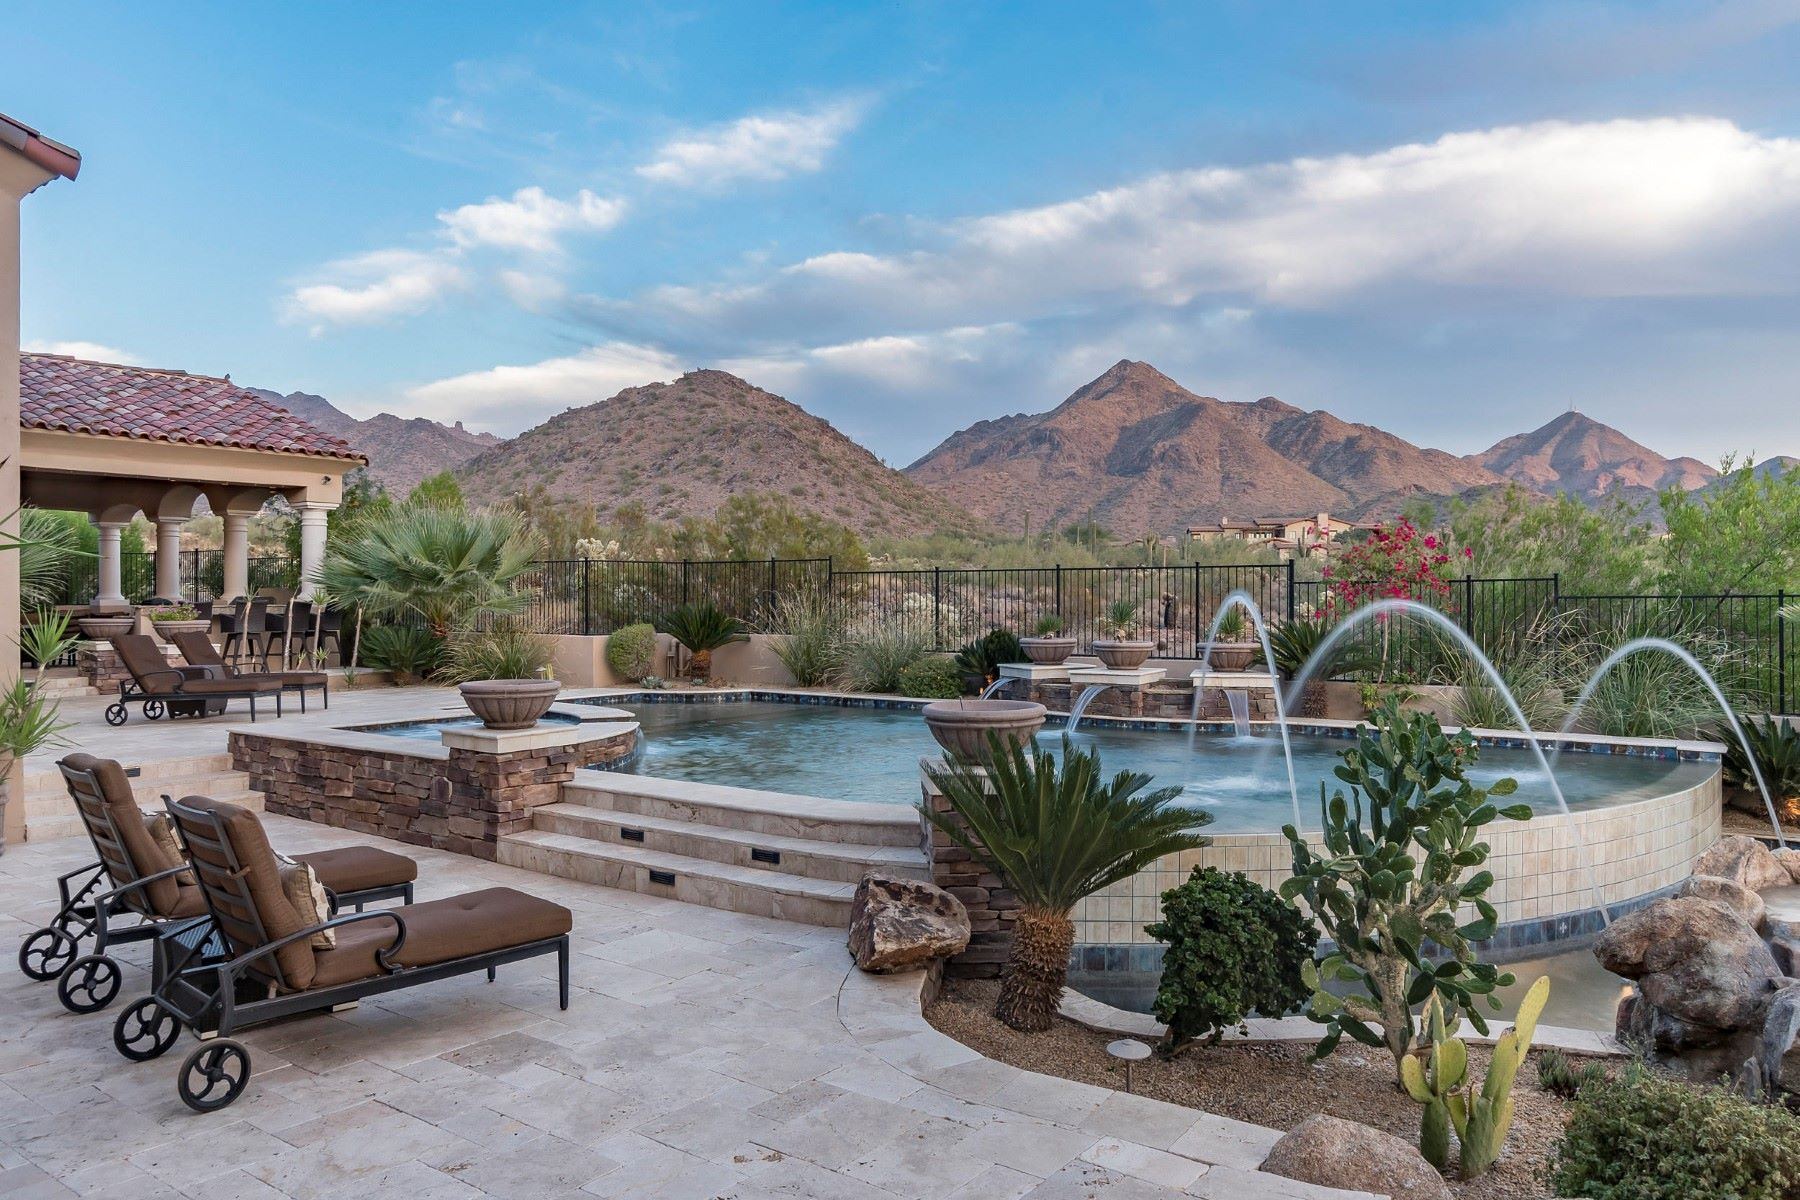 Maison unifamiliale pour l à vendre à Elegant home in Silverleaf at DC Ranch 10211 E Chino Dr, Scottsdale, Arizona, 85255 États-Unis